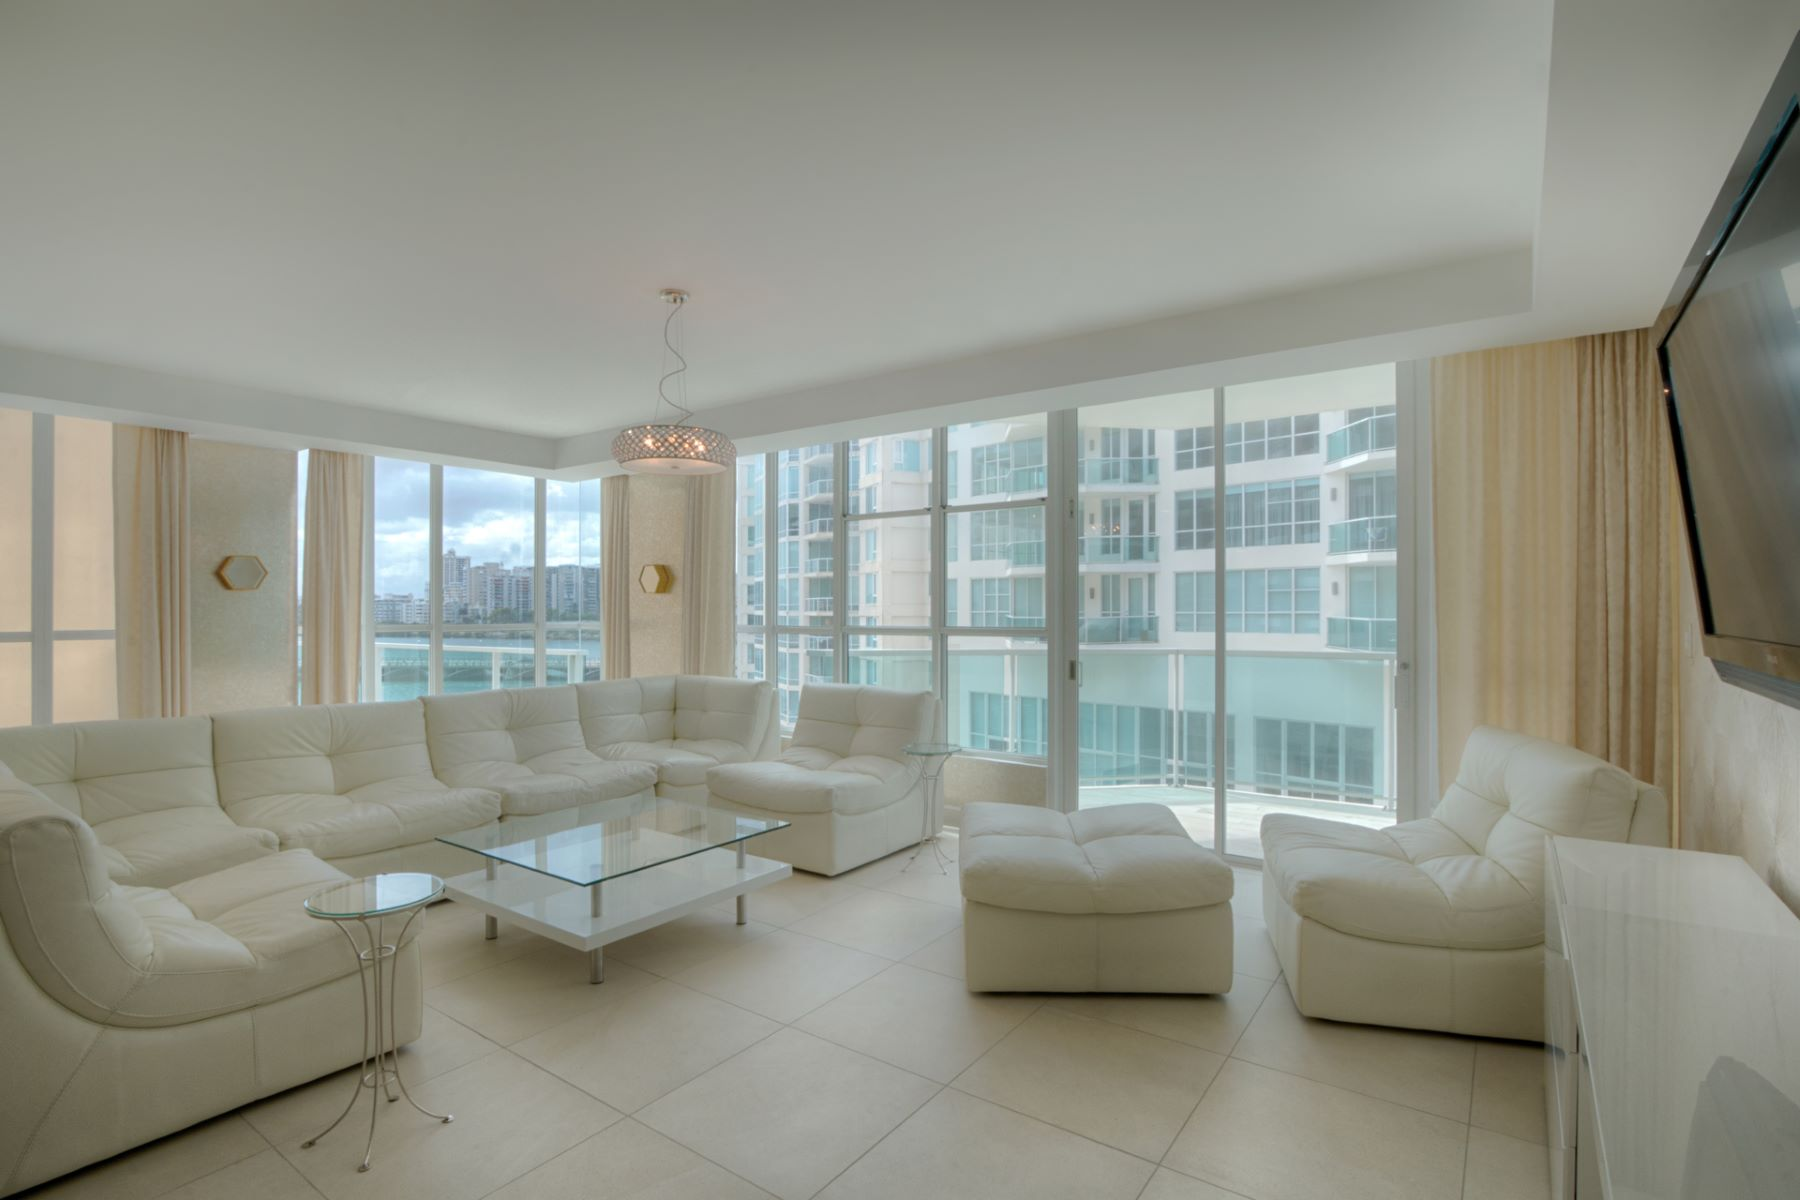 Additional photo for property listing at Elegant 6th Floor Rental with Private Pool 25 Munoz Rivera Avenue apt 601 San Juan, Puerto Rico 00901 Puerto Rico